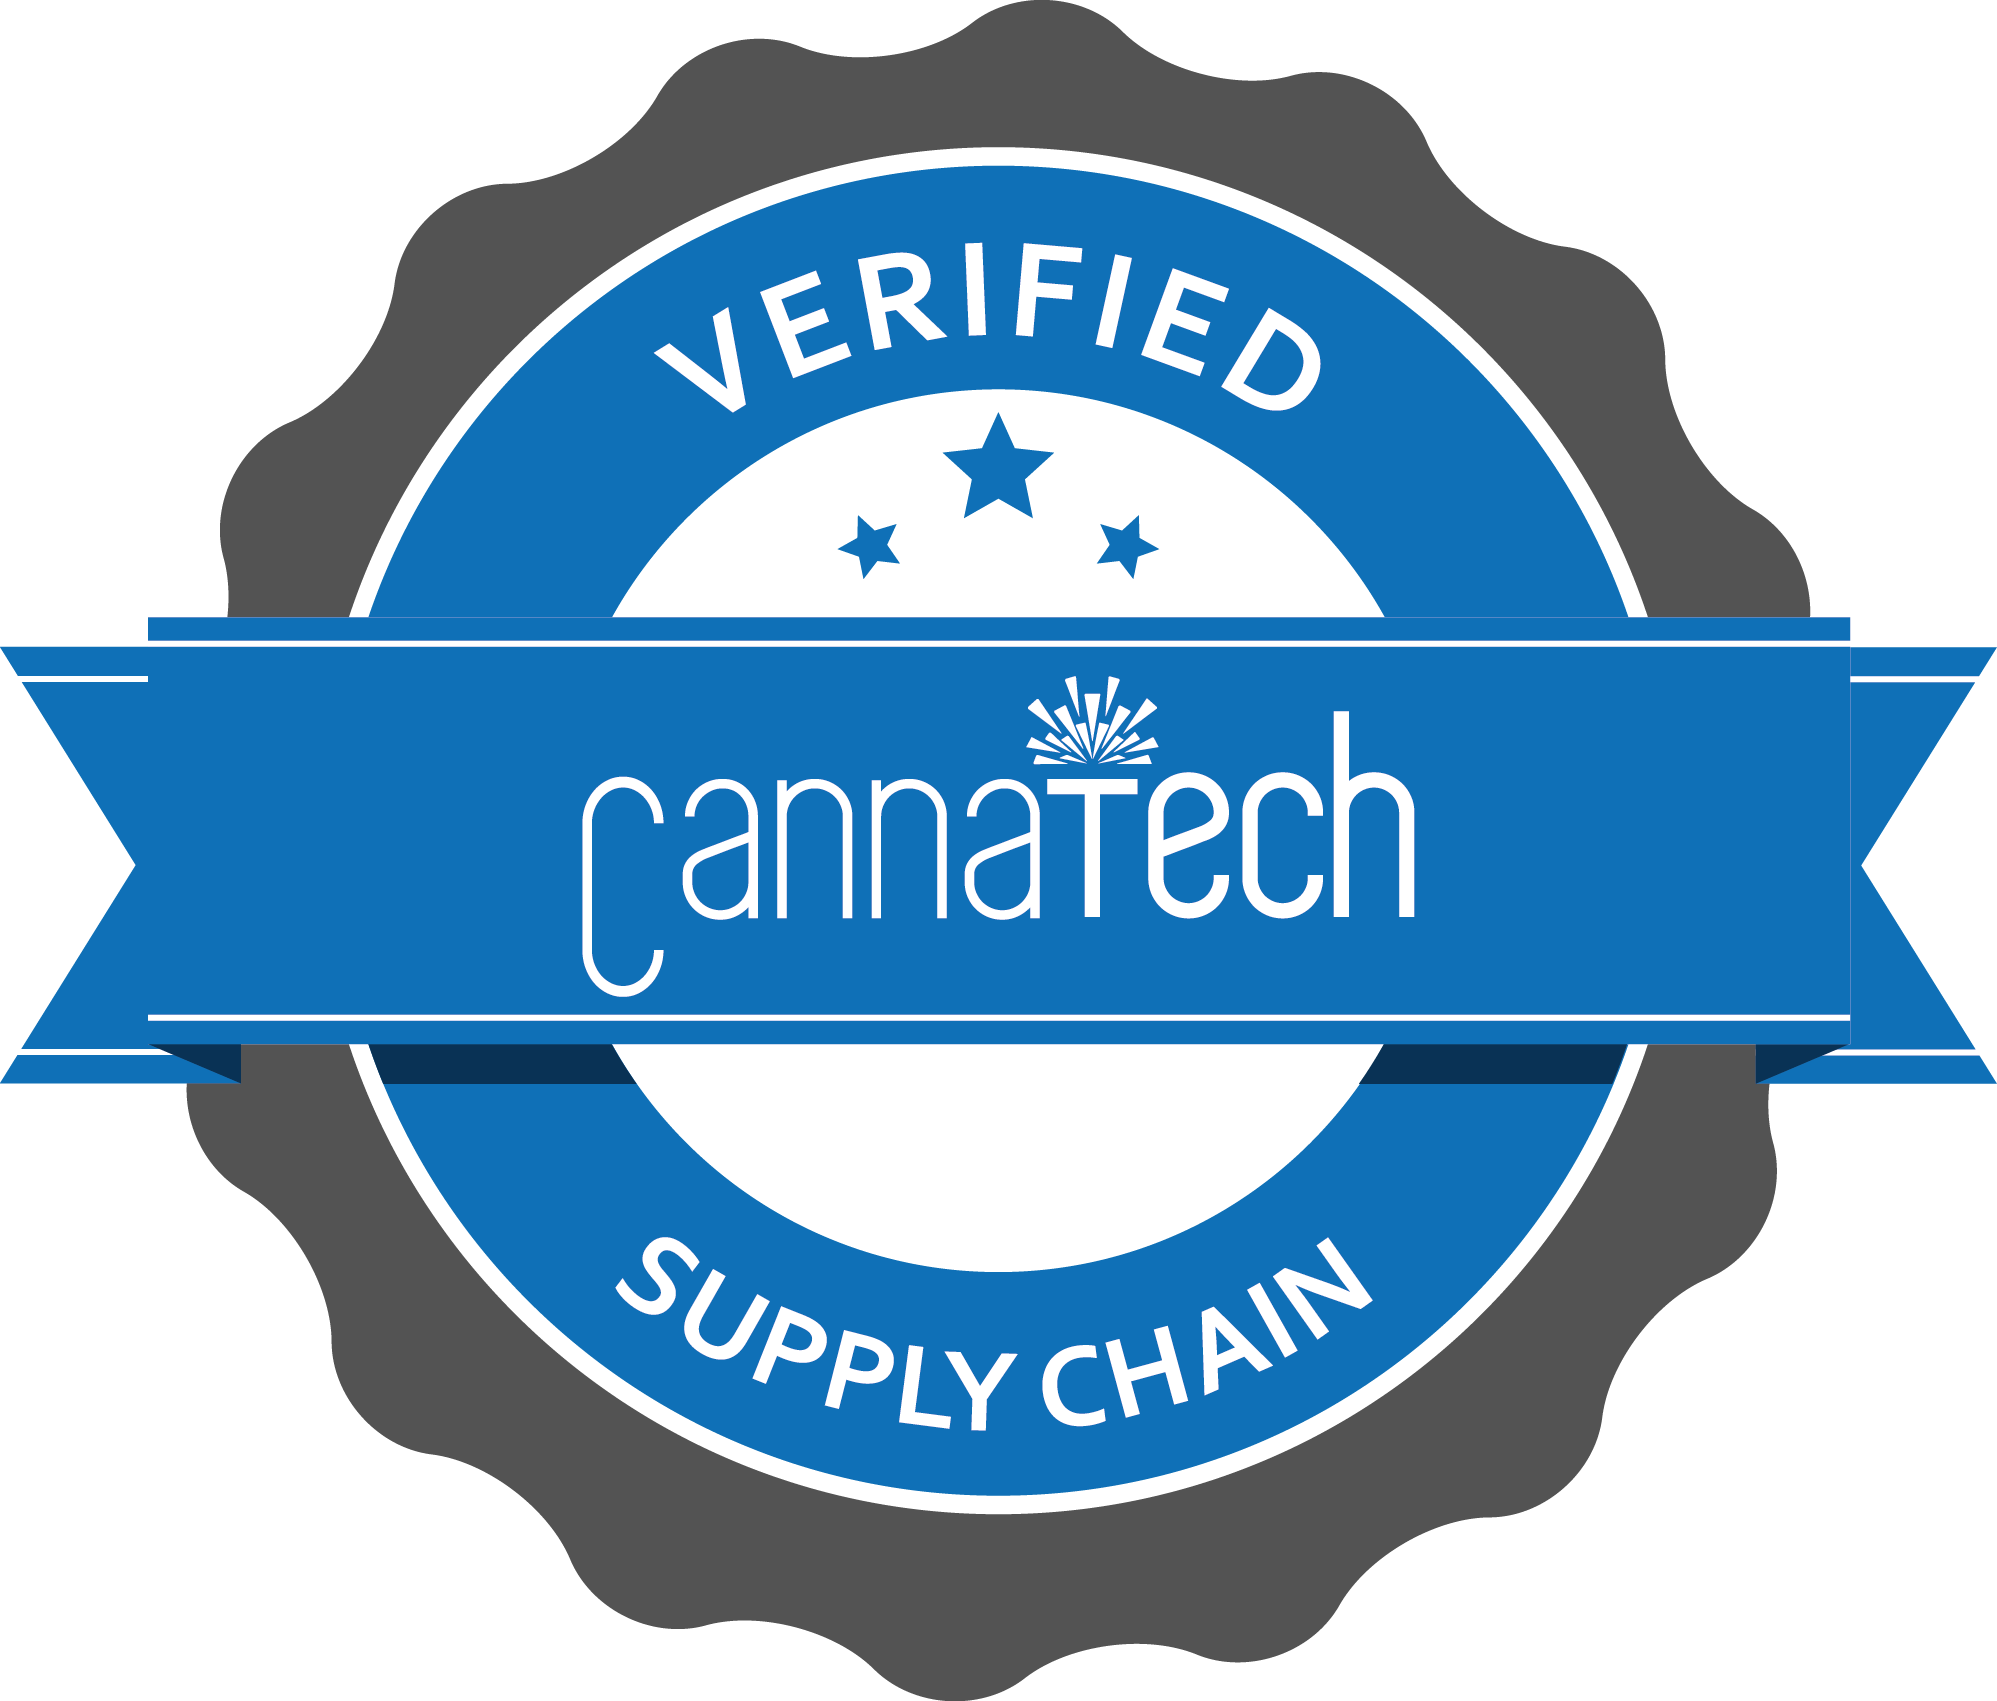 Creation of badges following the CannaTech Badge model